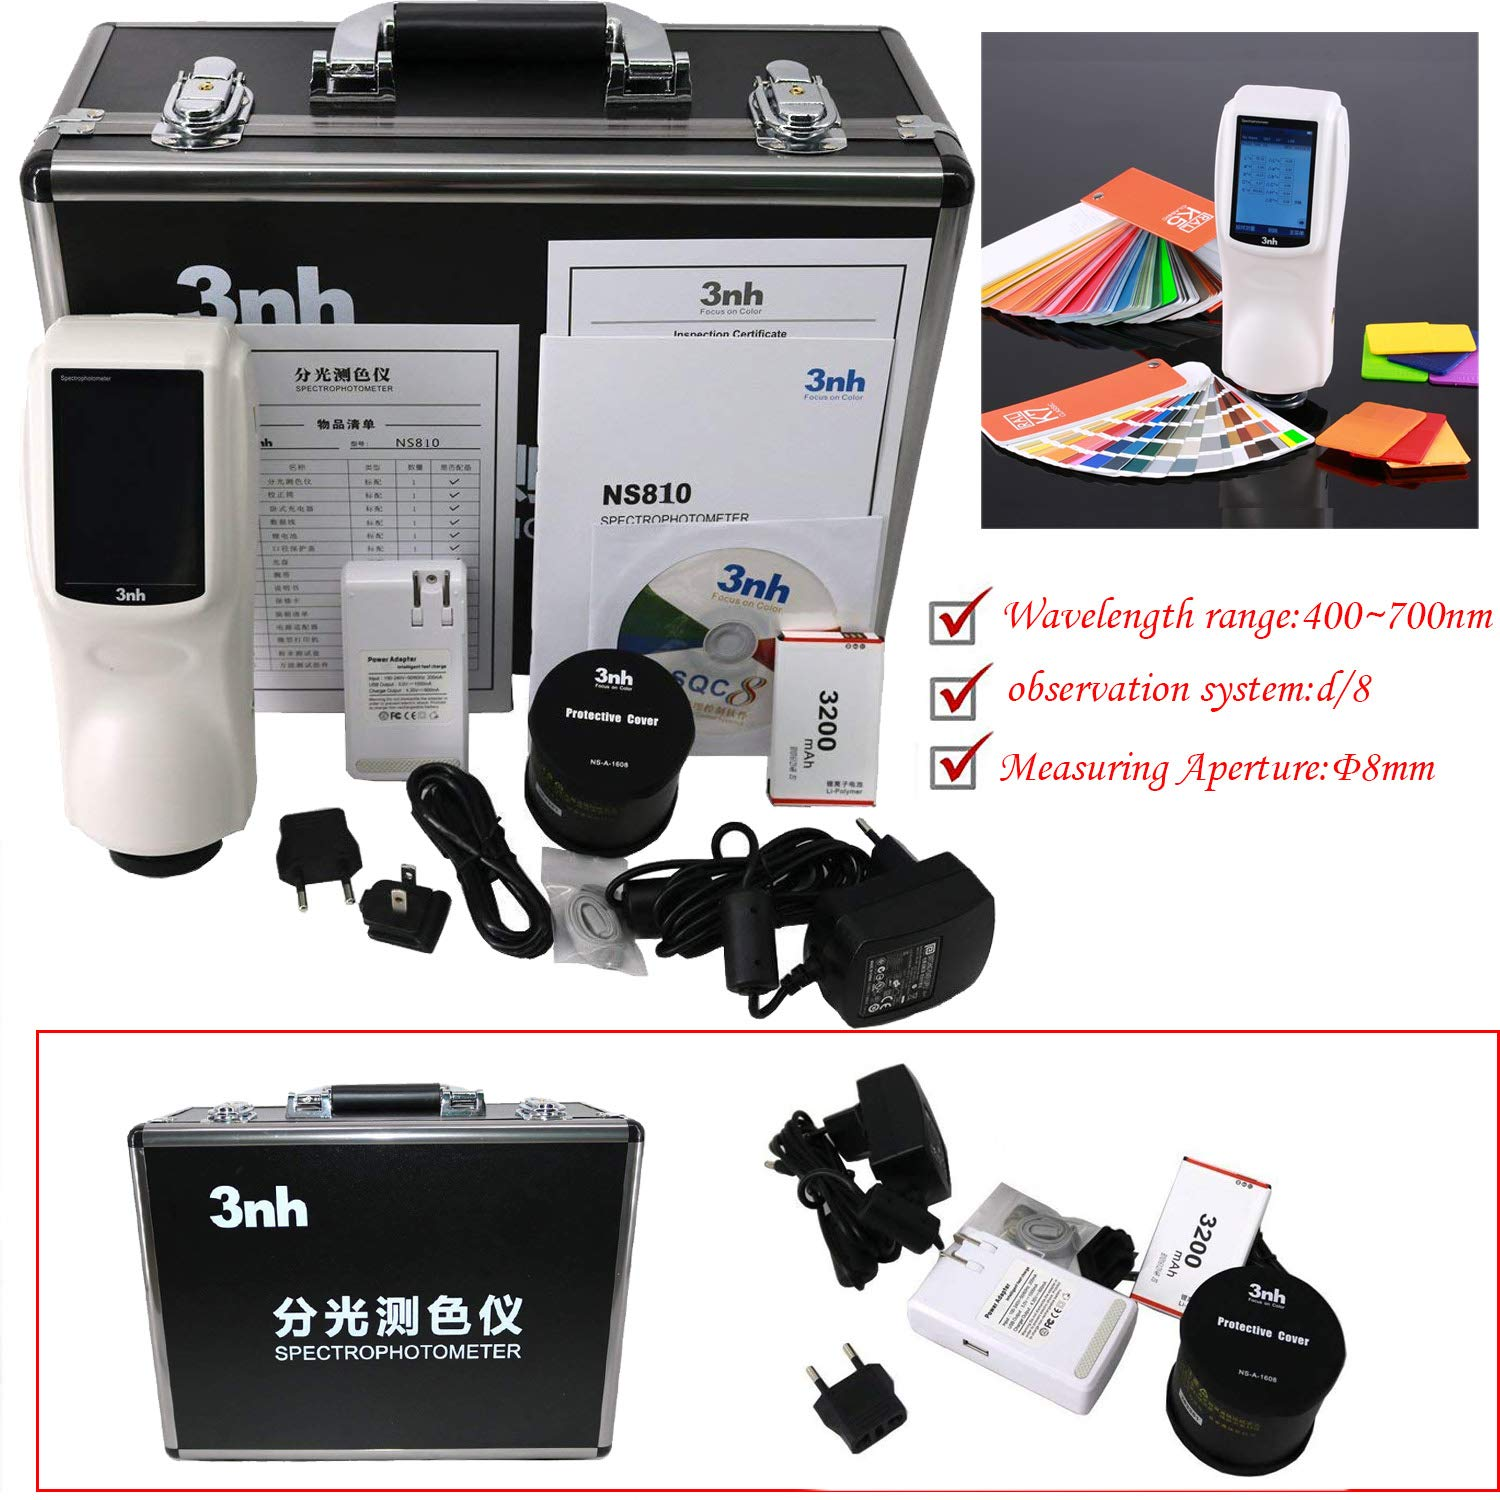 VTSYIQI Spectrophotometer Colorimeter Color Difference Meter Tester Capacitive Touch Screen with d/8 Color Matching 8mm Measuring Aperture for Plastic Electronic Painting Coating Ink Textile etc